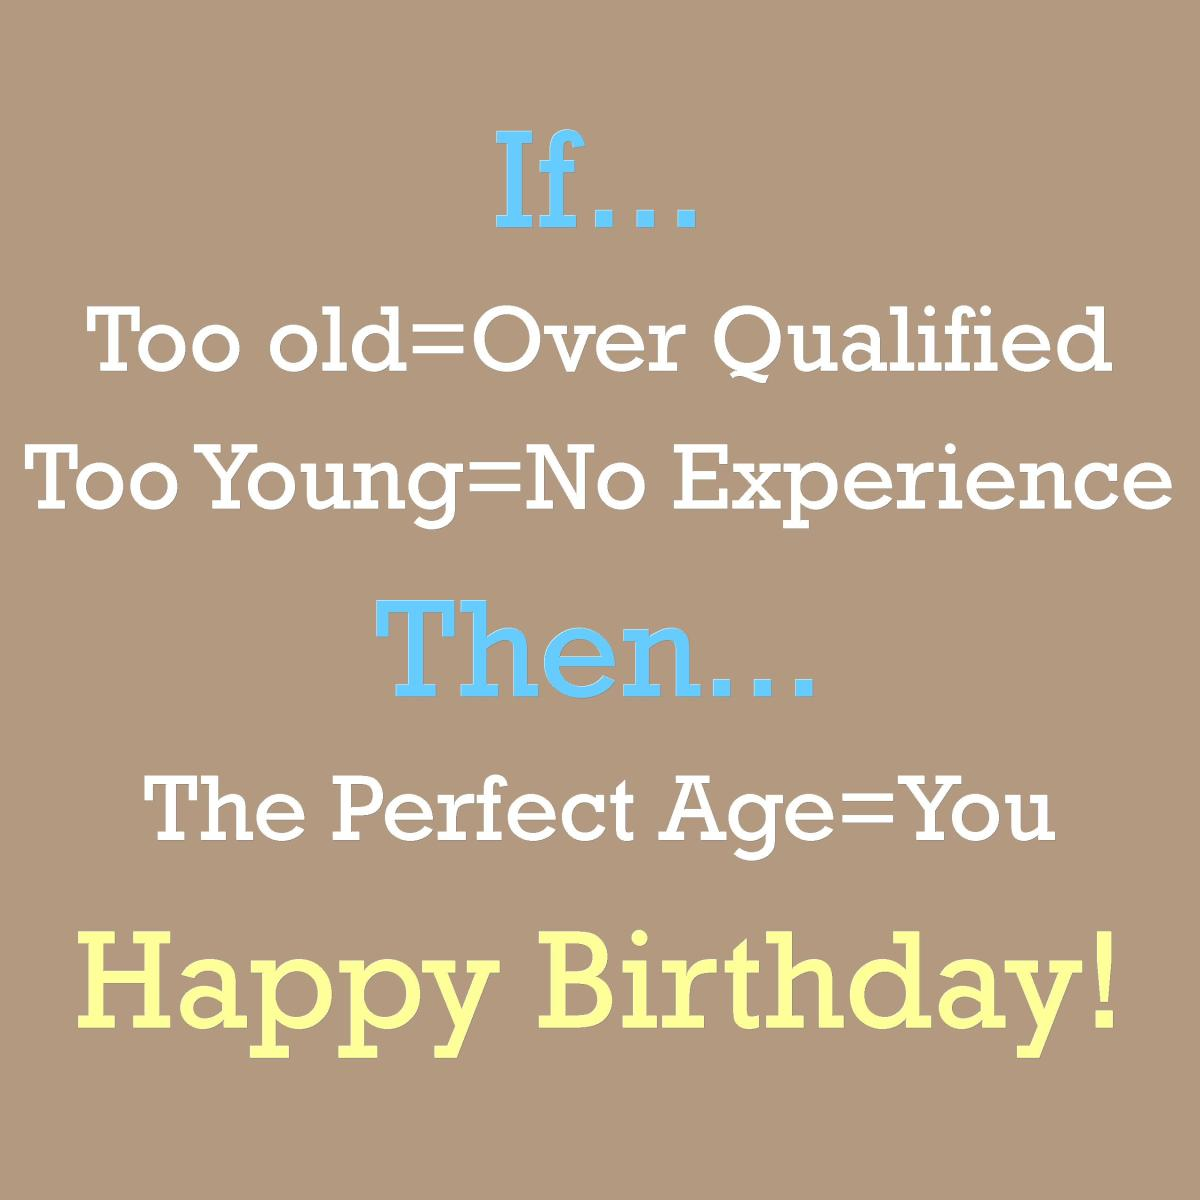 Birthday Messages And Quotes To Write In A Card